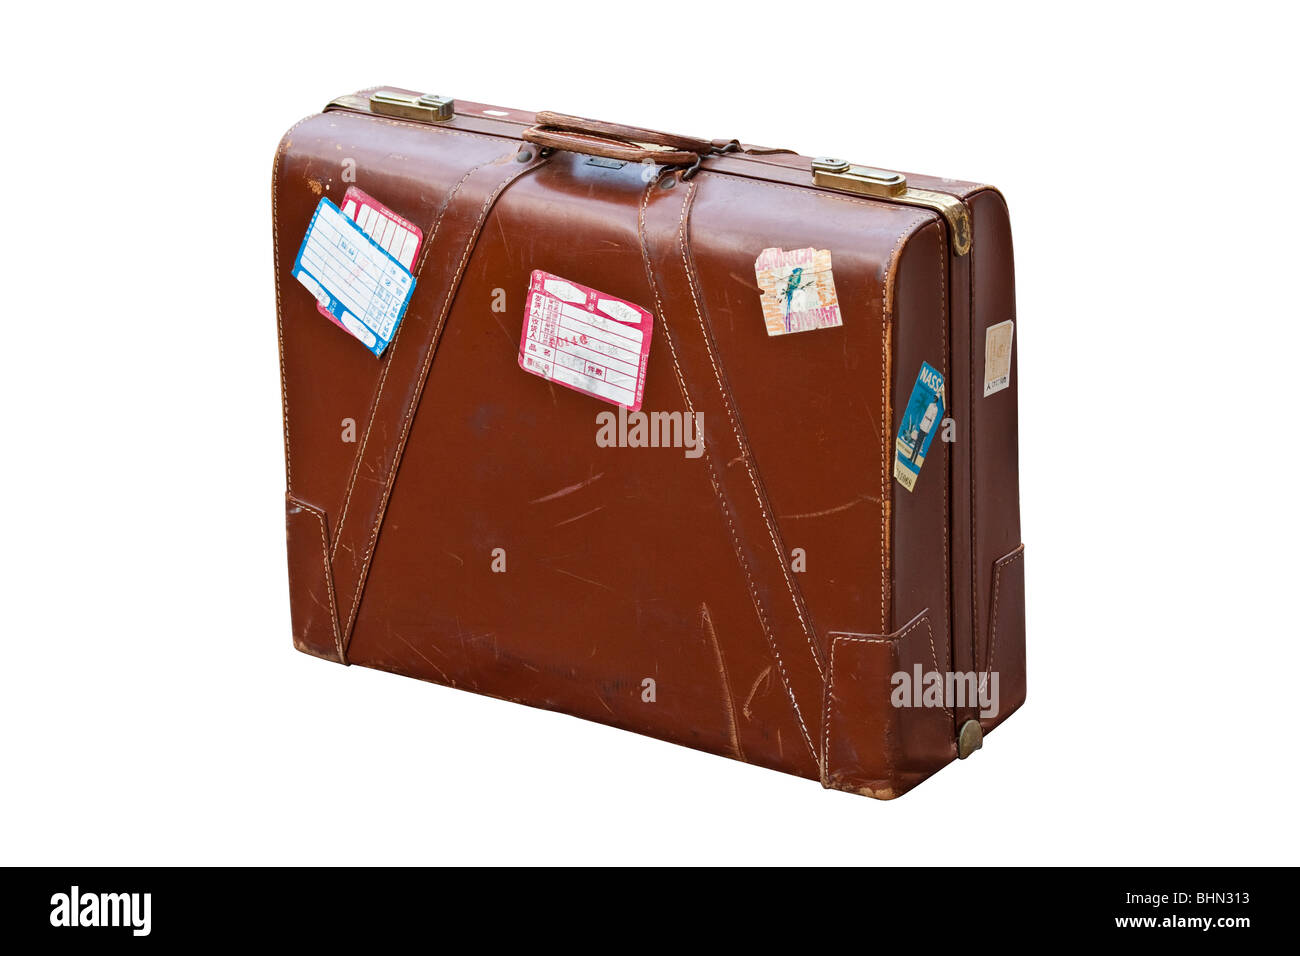 Well-travelled old leather suitcase with visa stickers Stock Photo